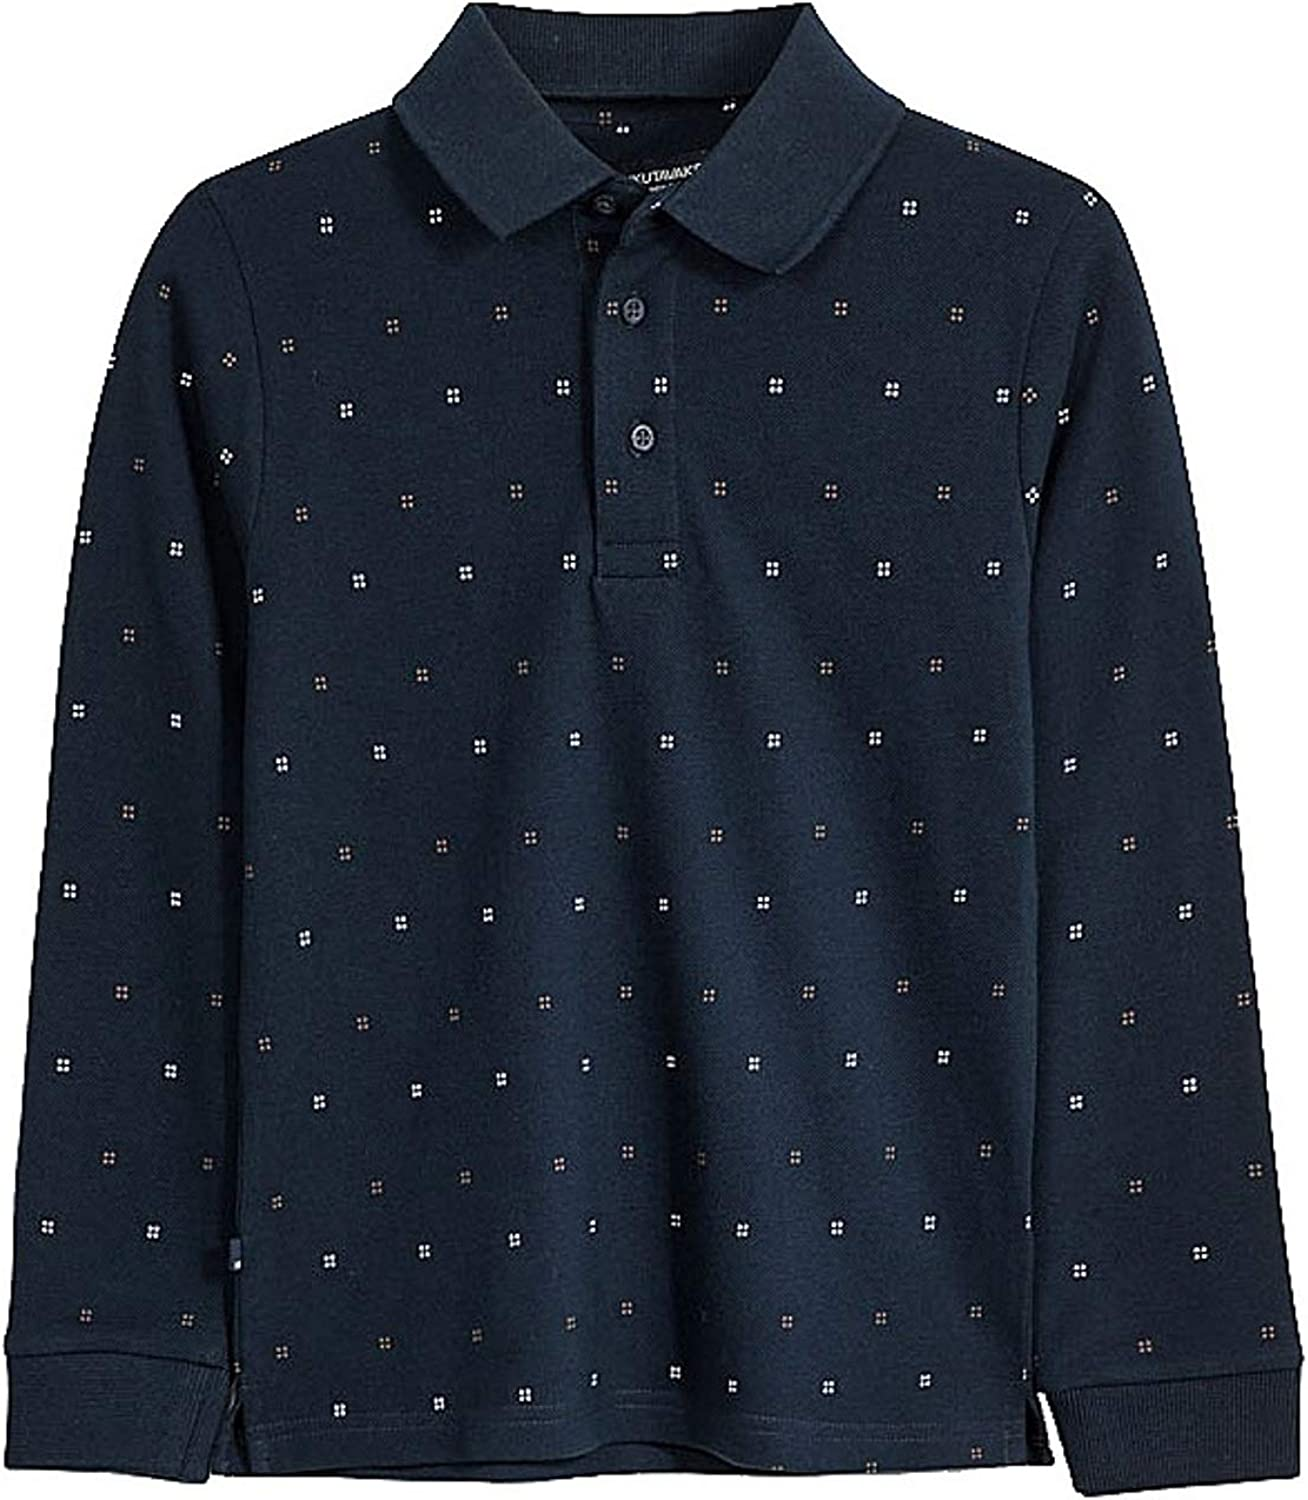 Mayoral - L/s Printed Polo for Boys - 7122, Deep Blue